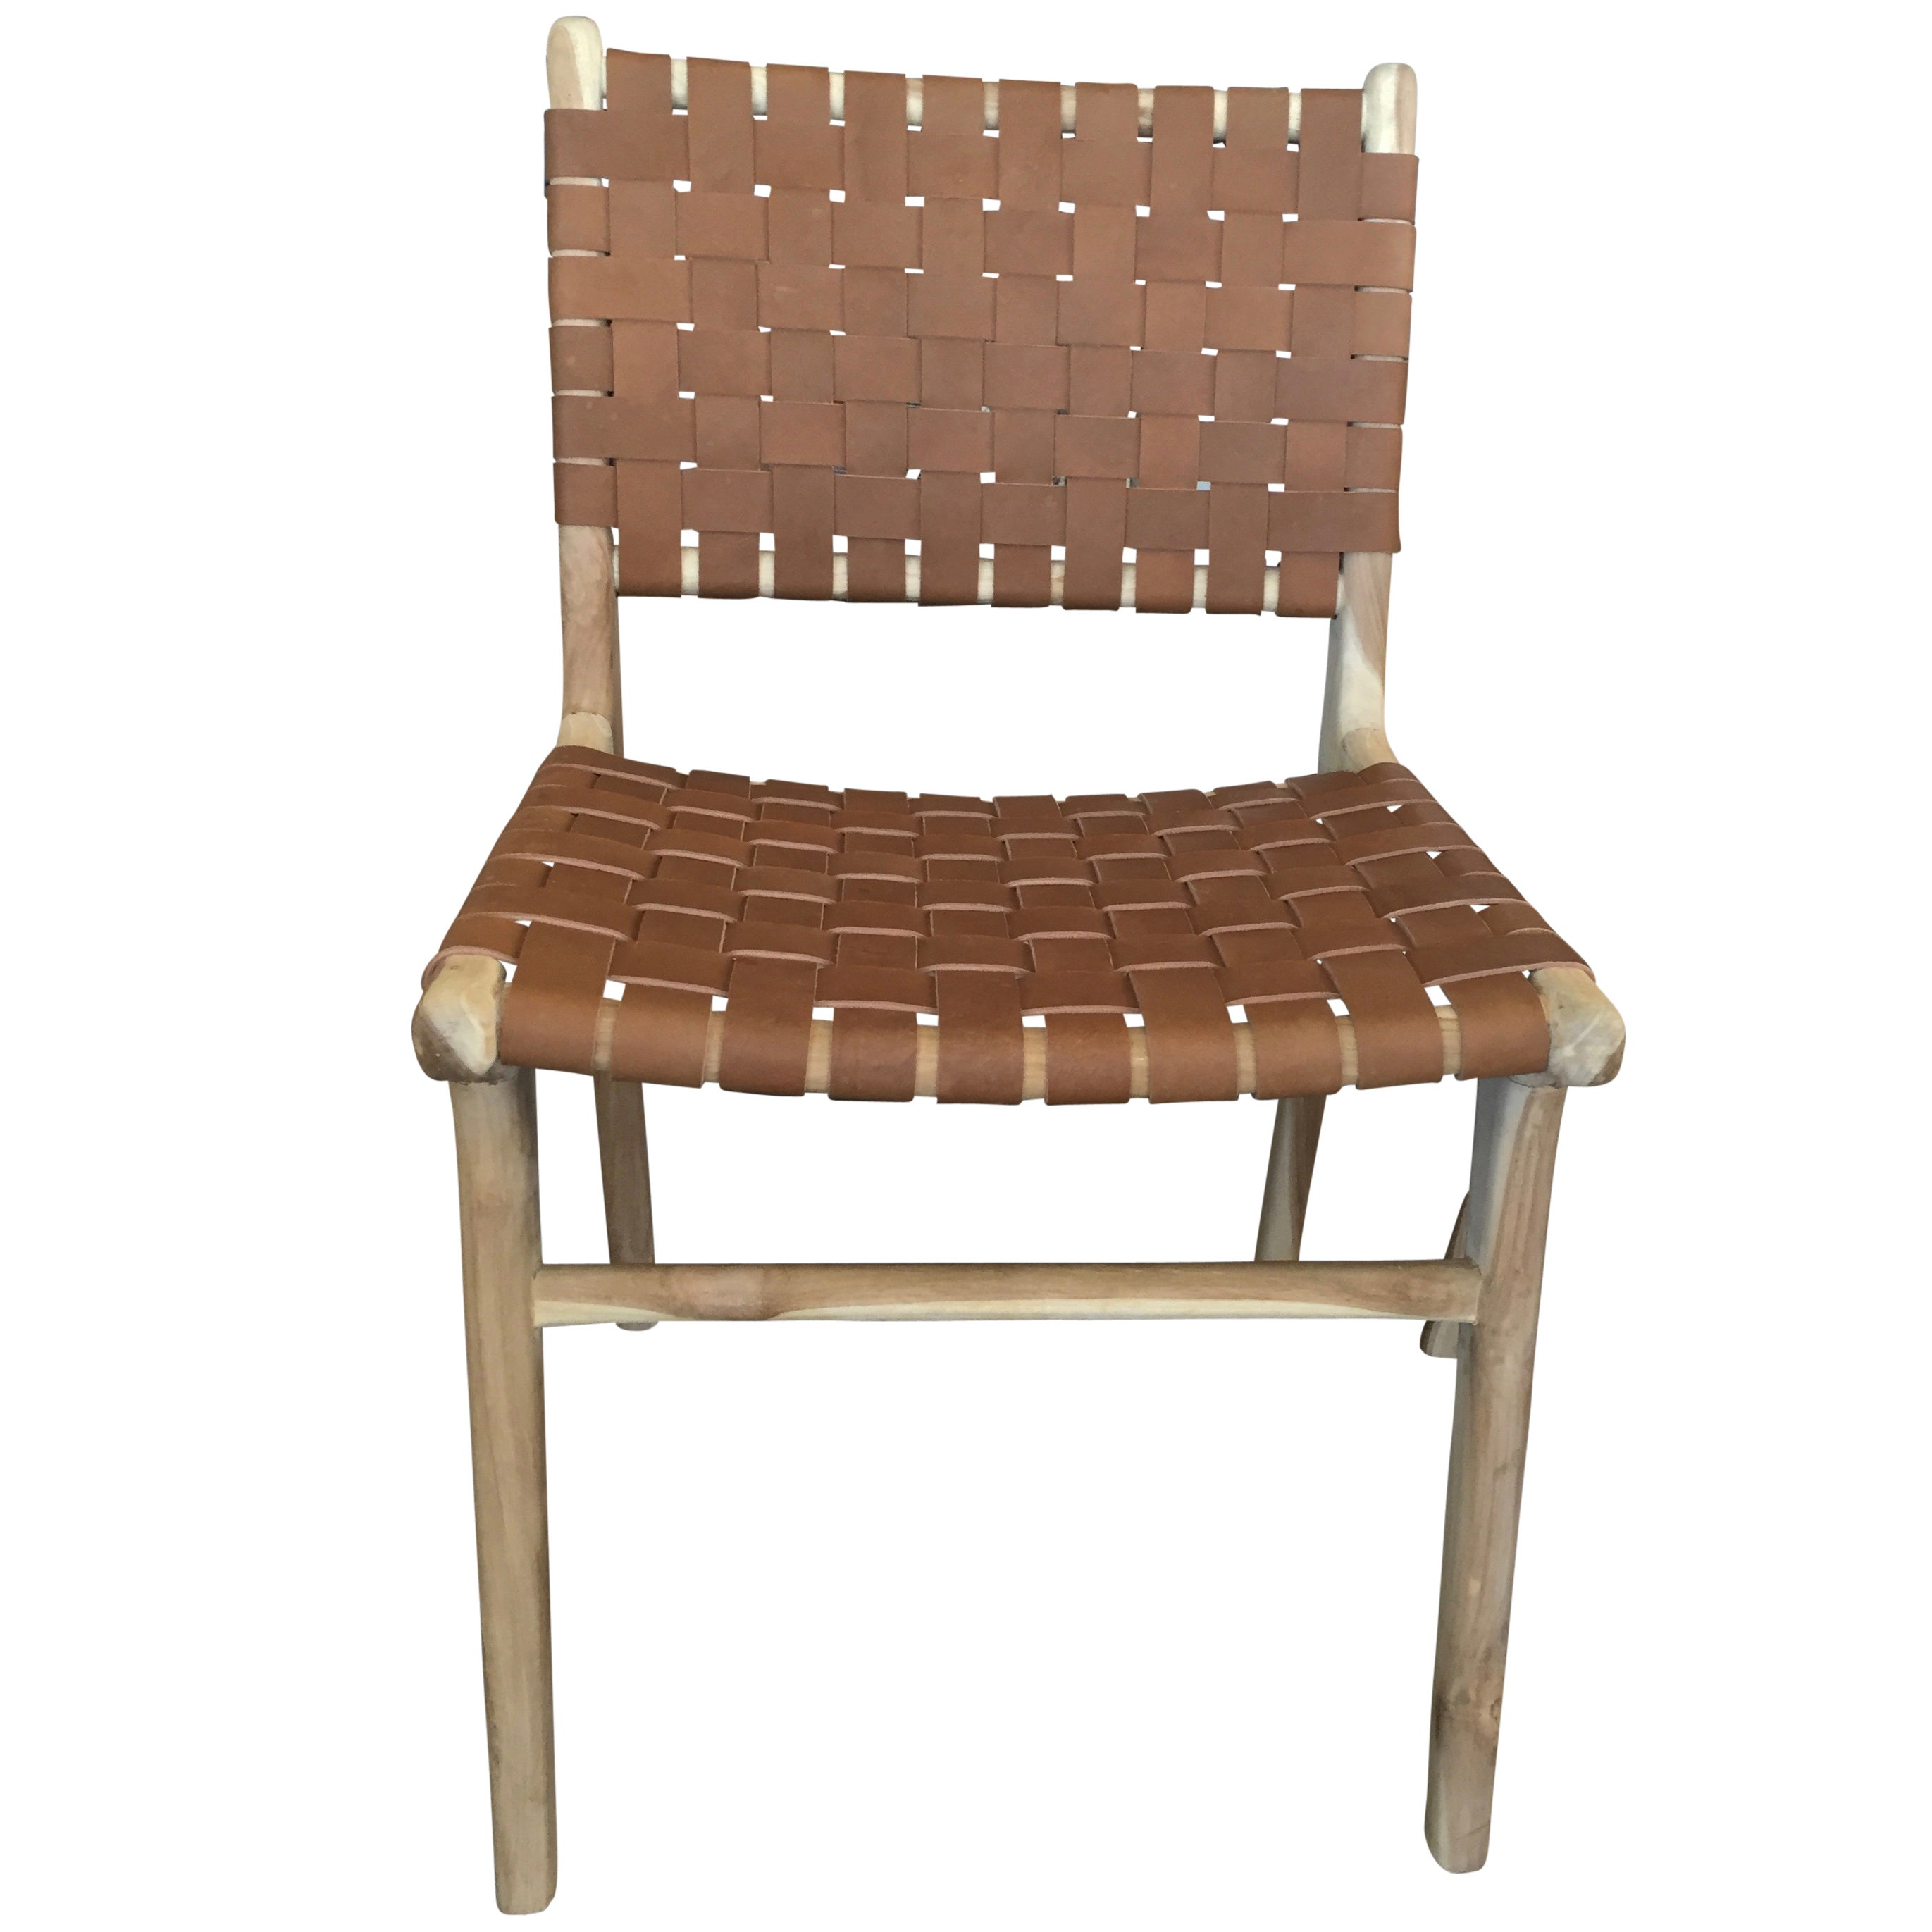 Phenomenal Set Of Six Flora Leather Strap Woven Dining Chair Haskell Evergreenethics Interior Chair Design Evergreenethicsorg